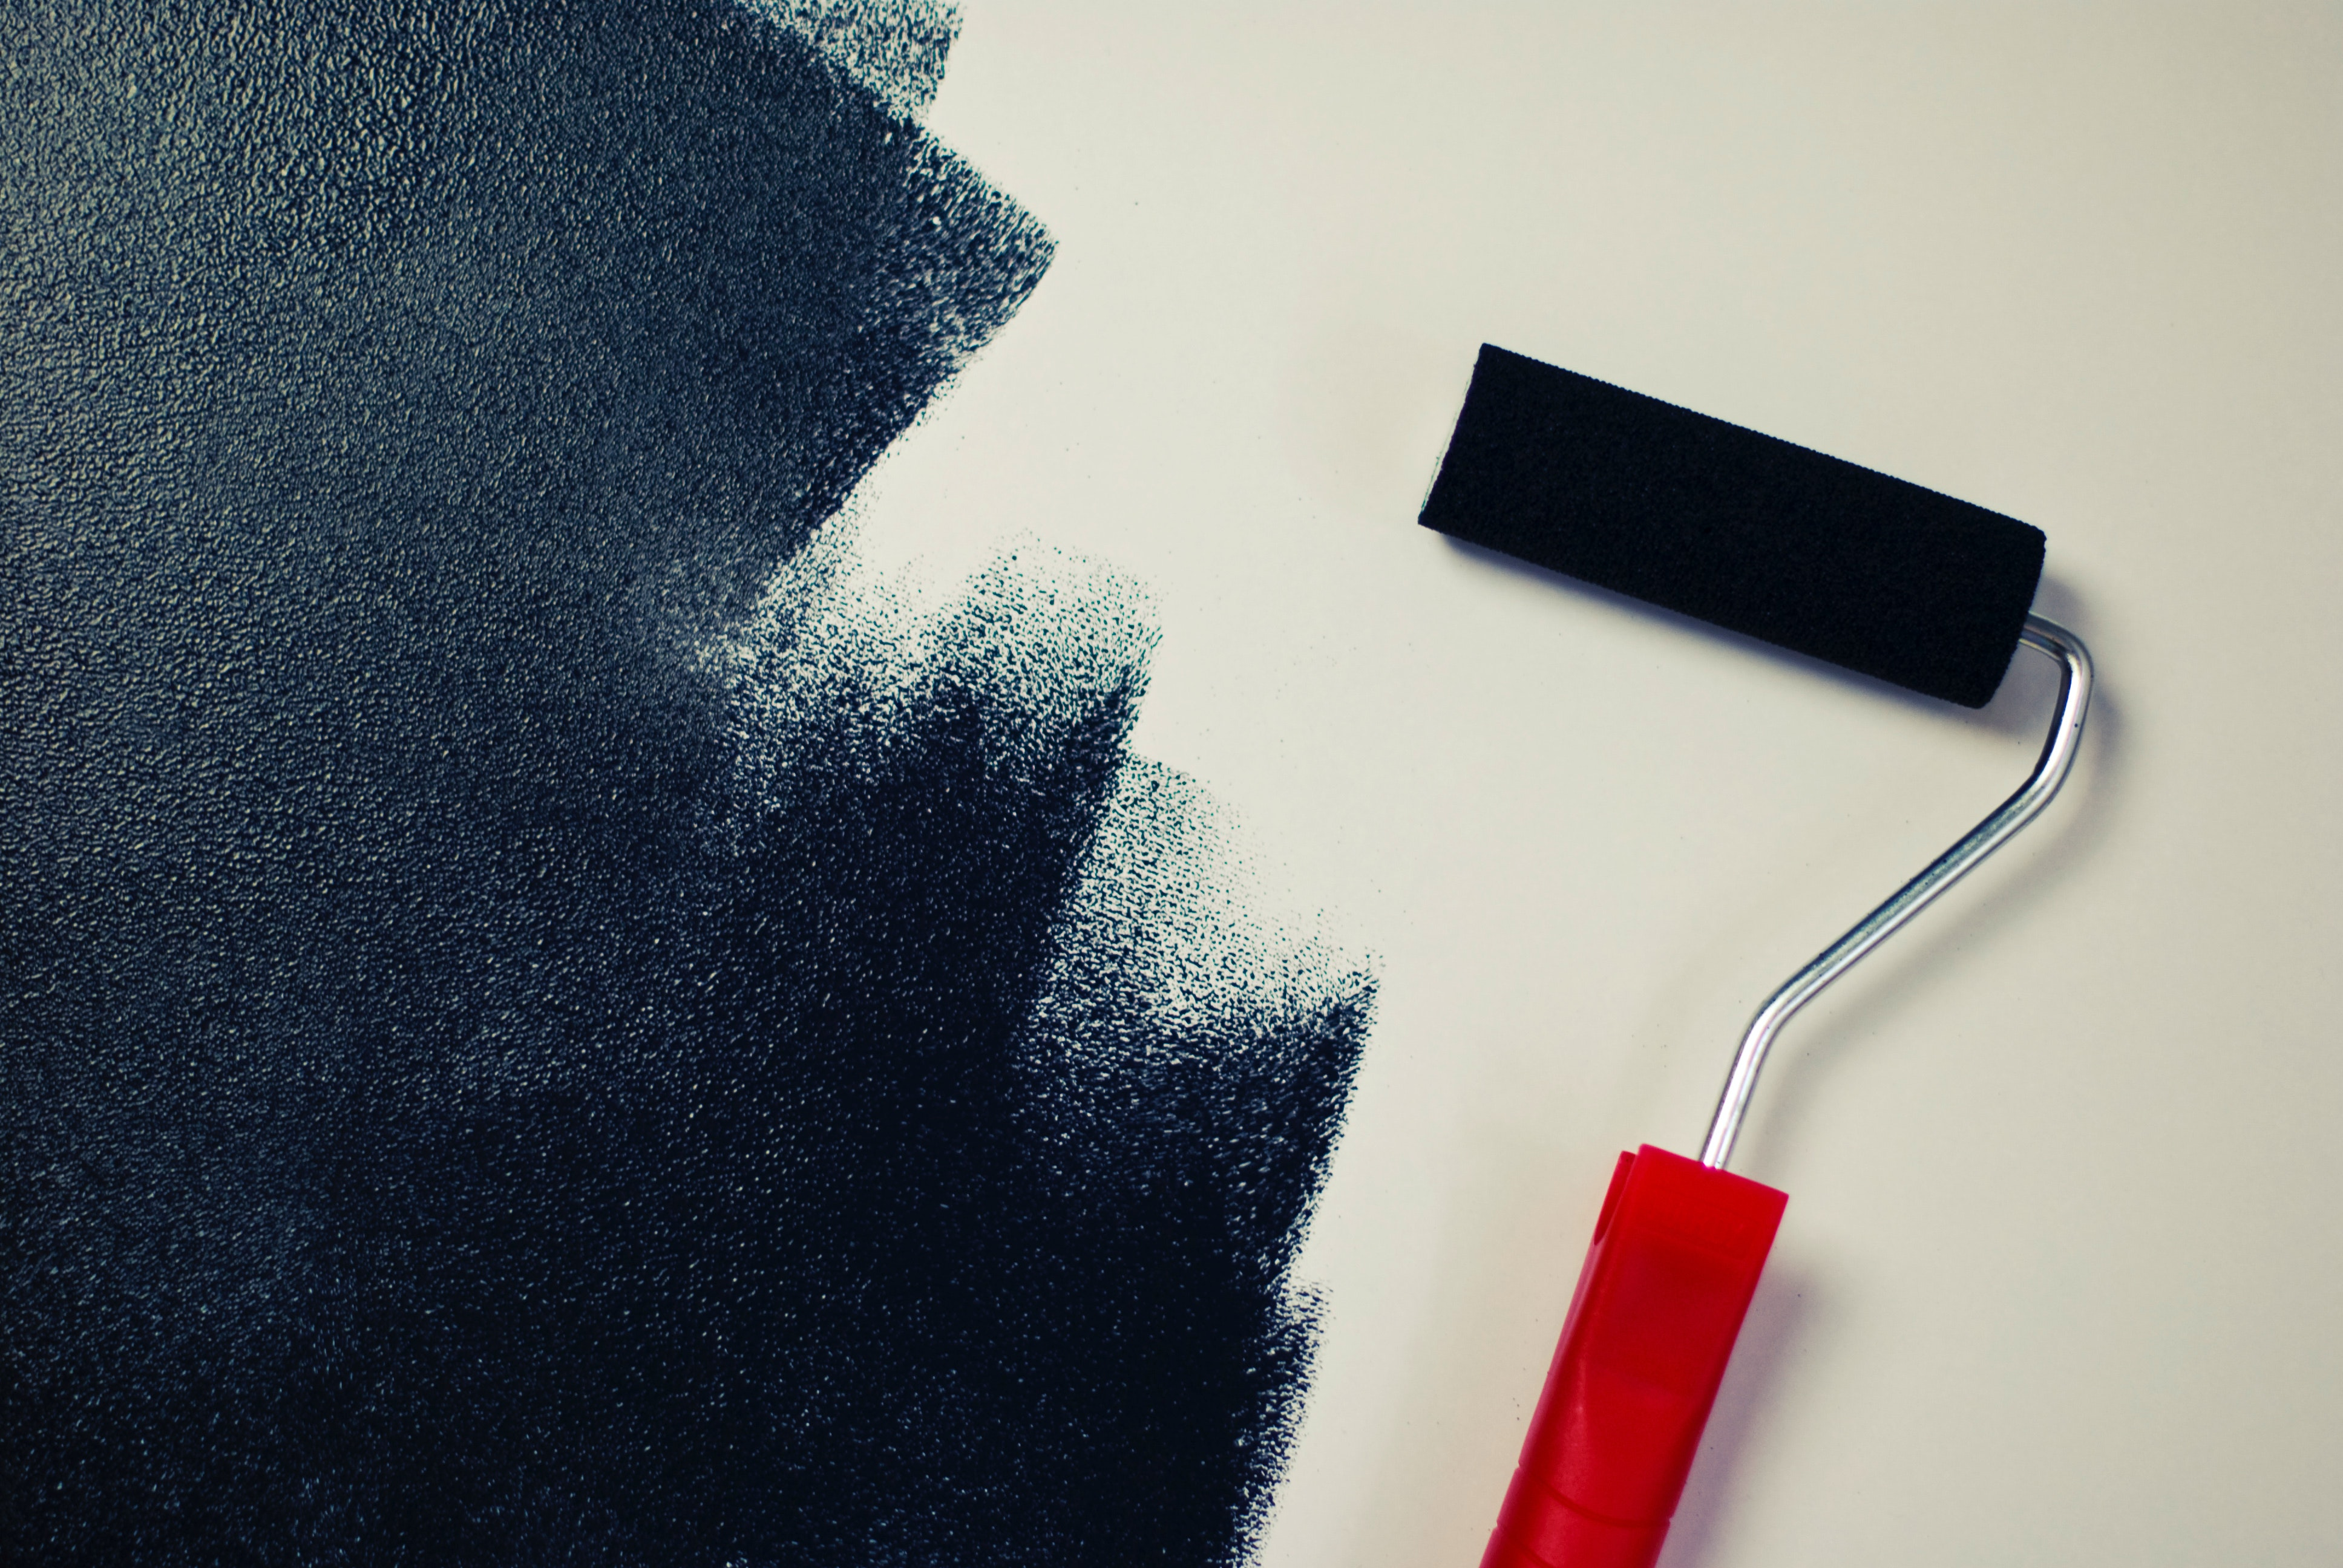 Red Handle Roller Paint Brush Free Stock Photo